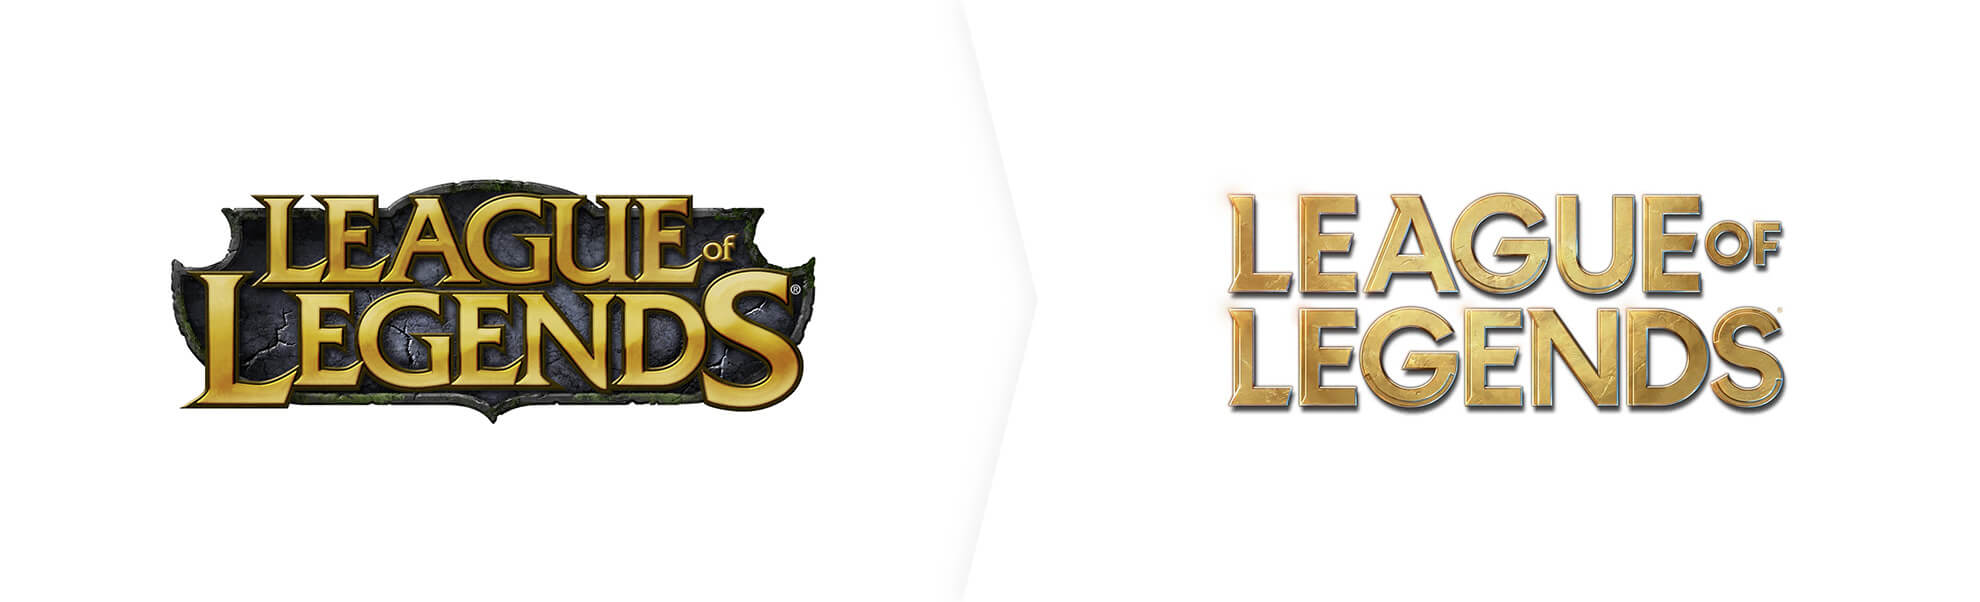 League of Legends zmienia logo